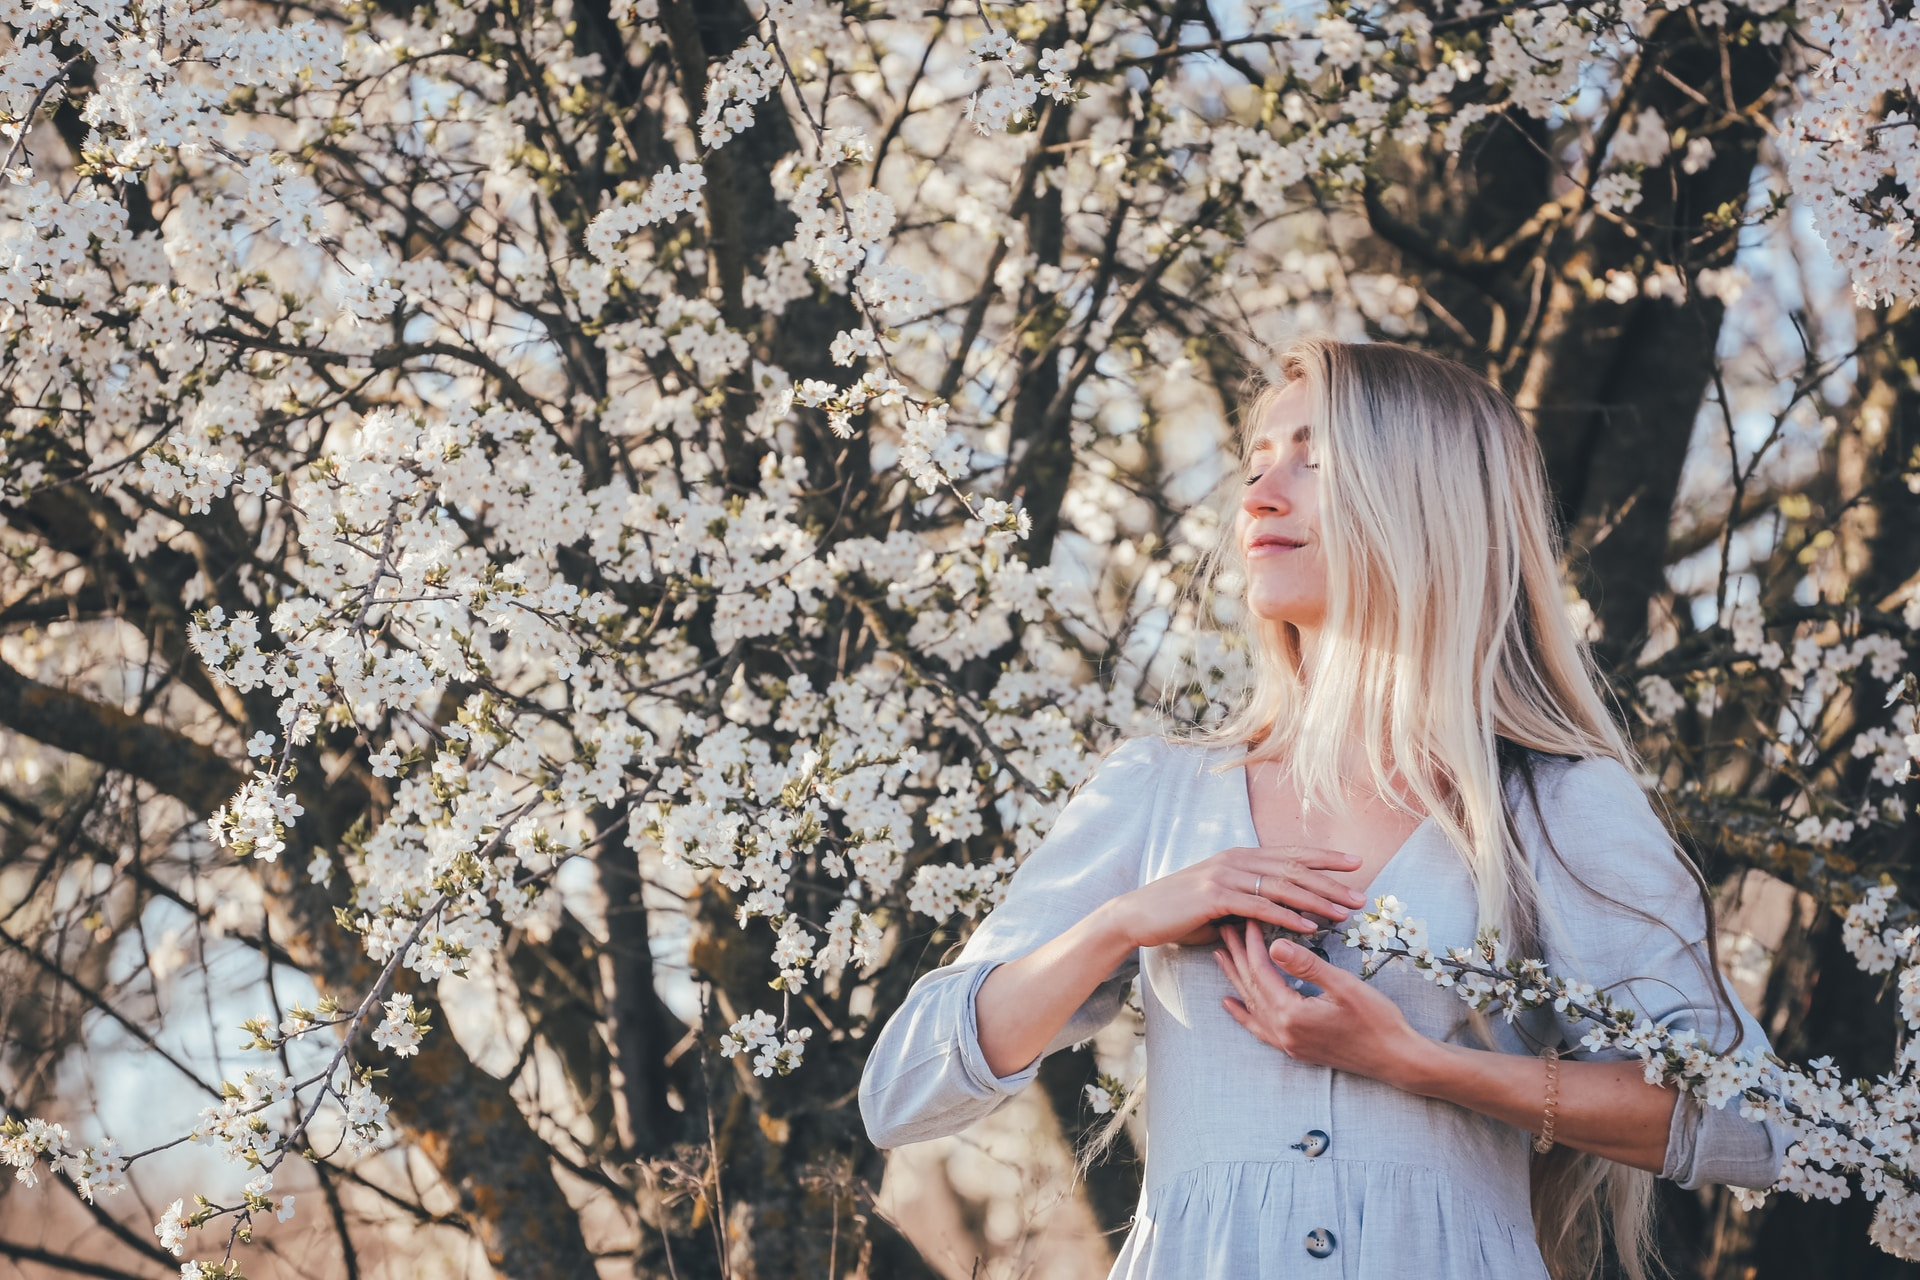 woman in white dress standing under white cherry blossom tree during daytime